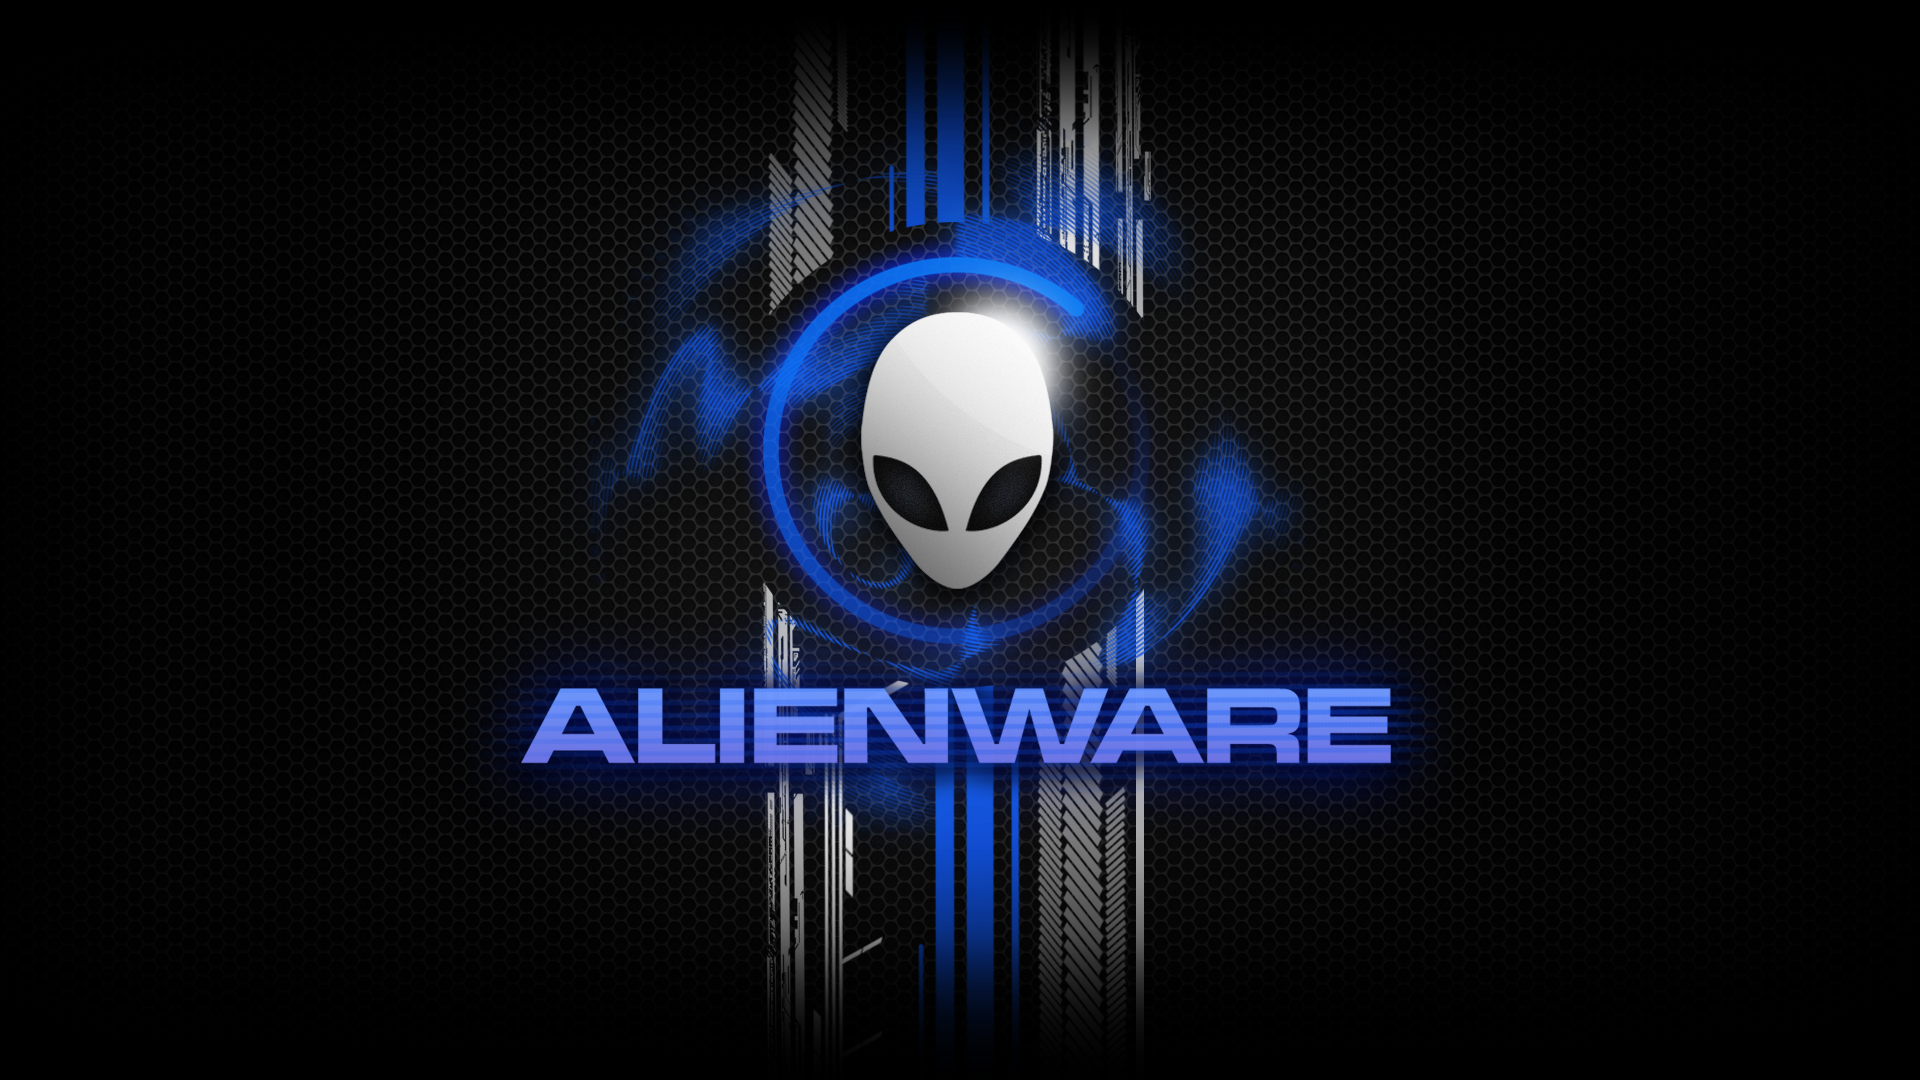 HD Alienware Wallpapers 1920x1080 & Alienware Backgrounds for